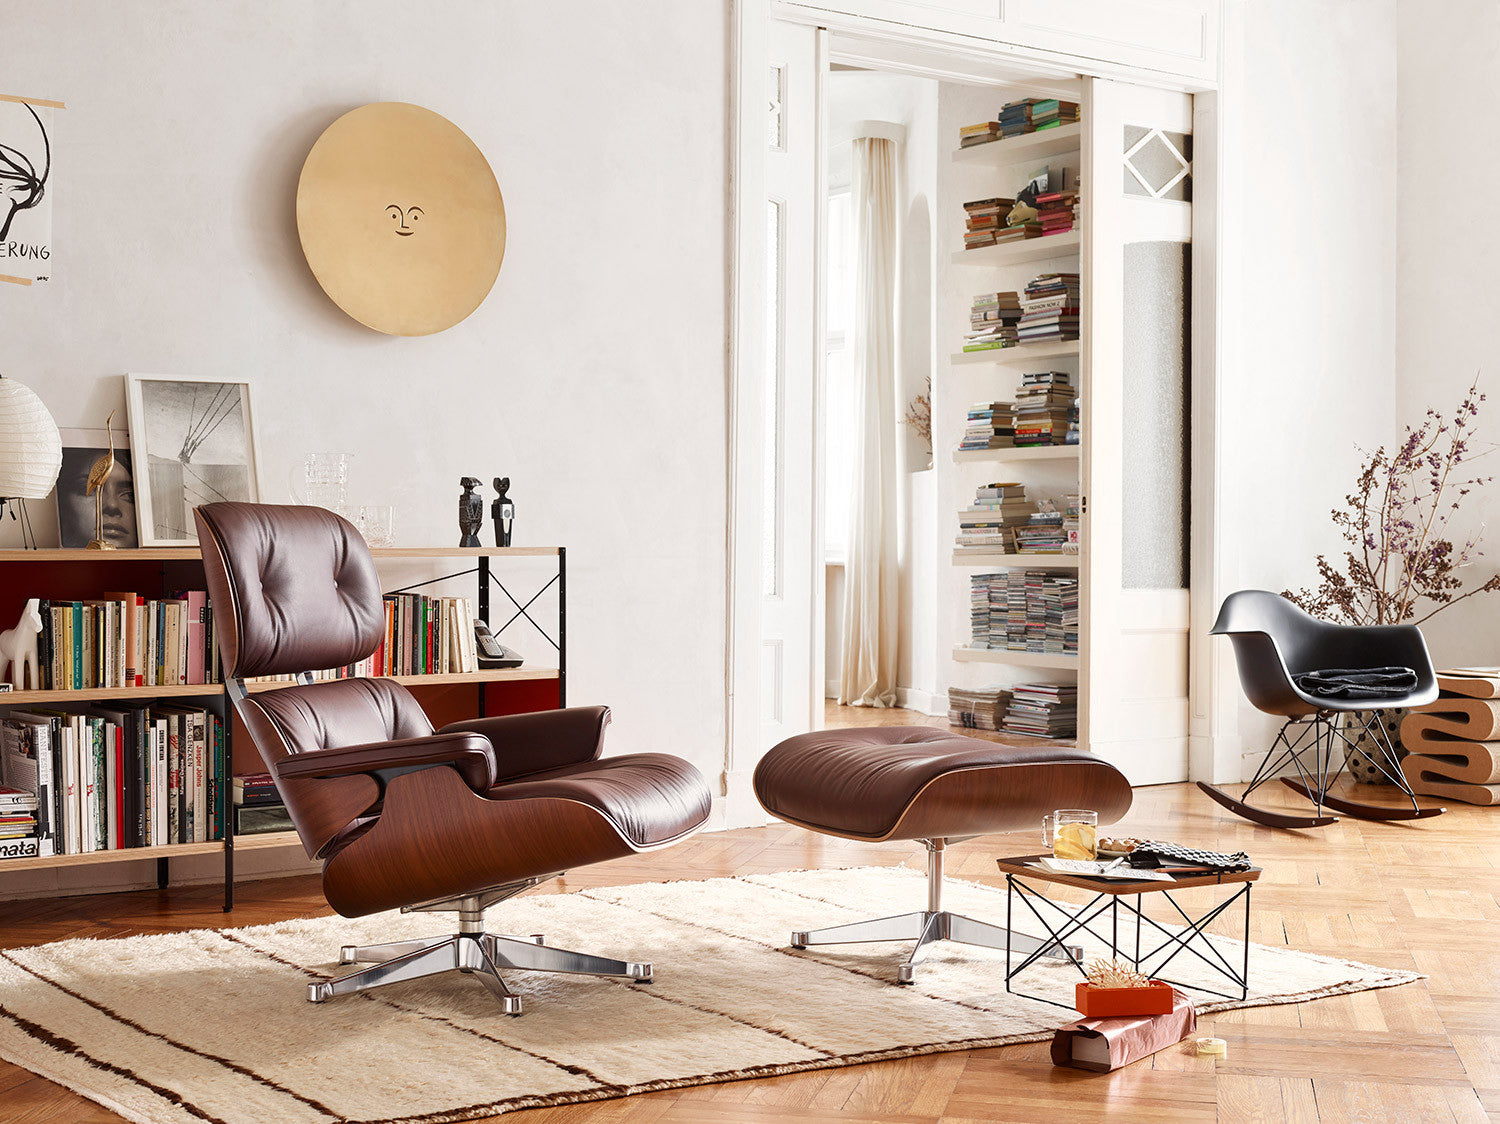 seating ottoman vitra model lounge chairs and chair eames